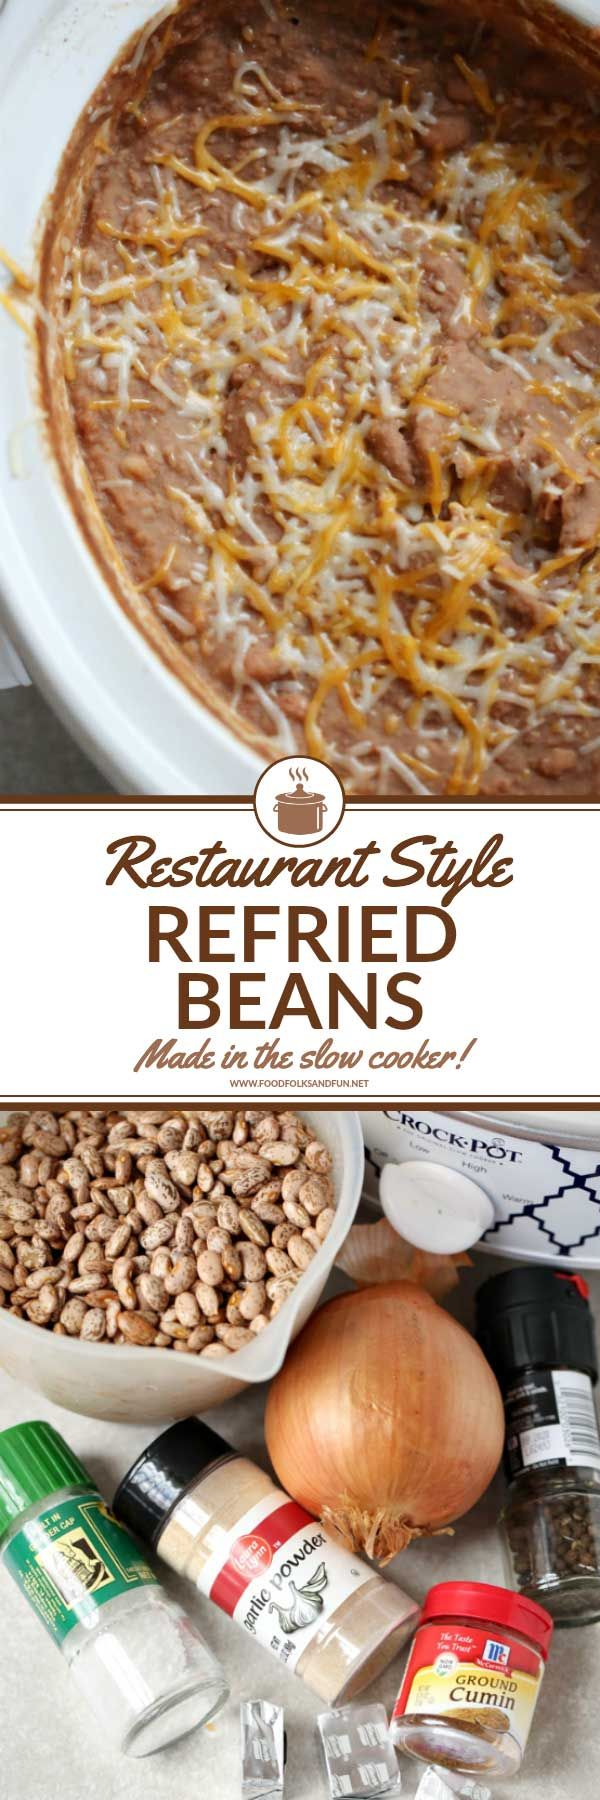 Restaurant Style Refried Beans recipe – these are the best refried beans! They're made in the crock-pot and taste just like they came from your favorite Mexican restaurant!